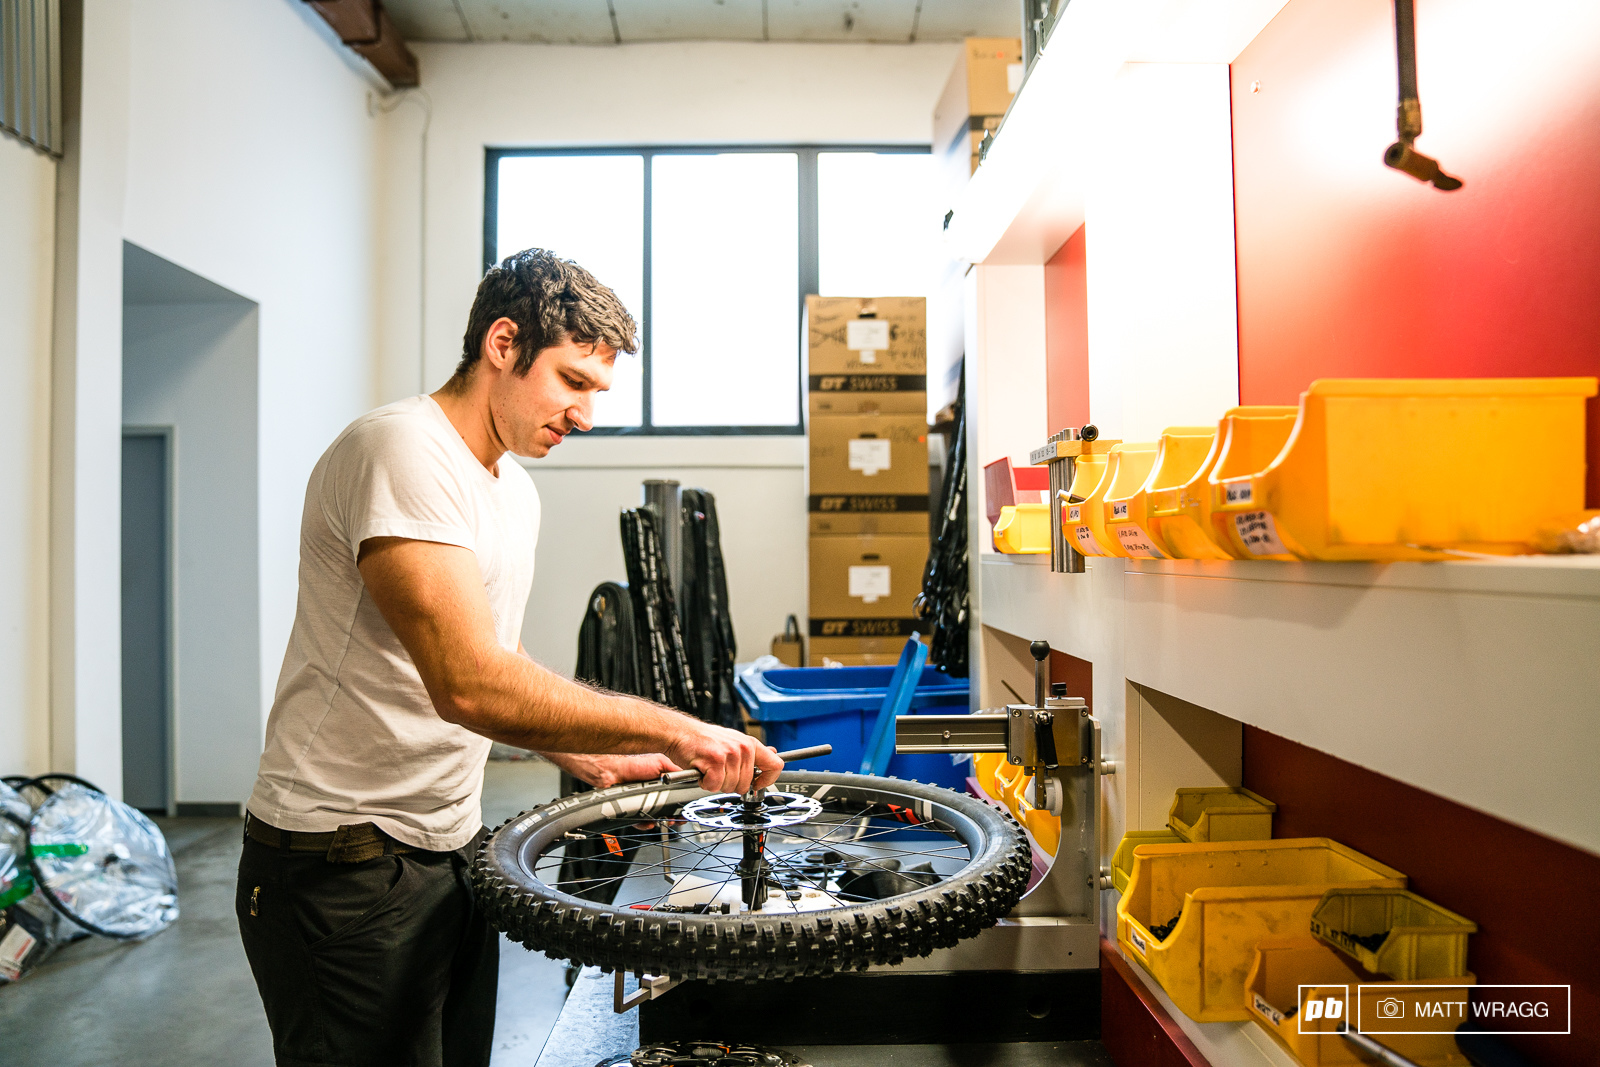 The wheels are all hand-assembled here with the rotors cassette and tyre all mounted and checked by a technician.